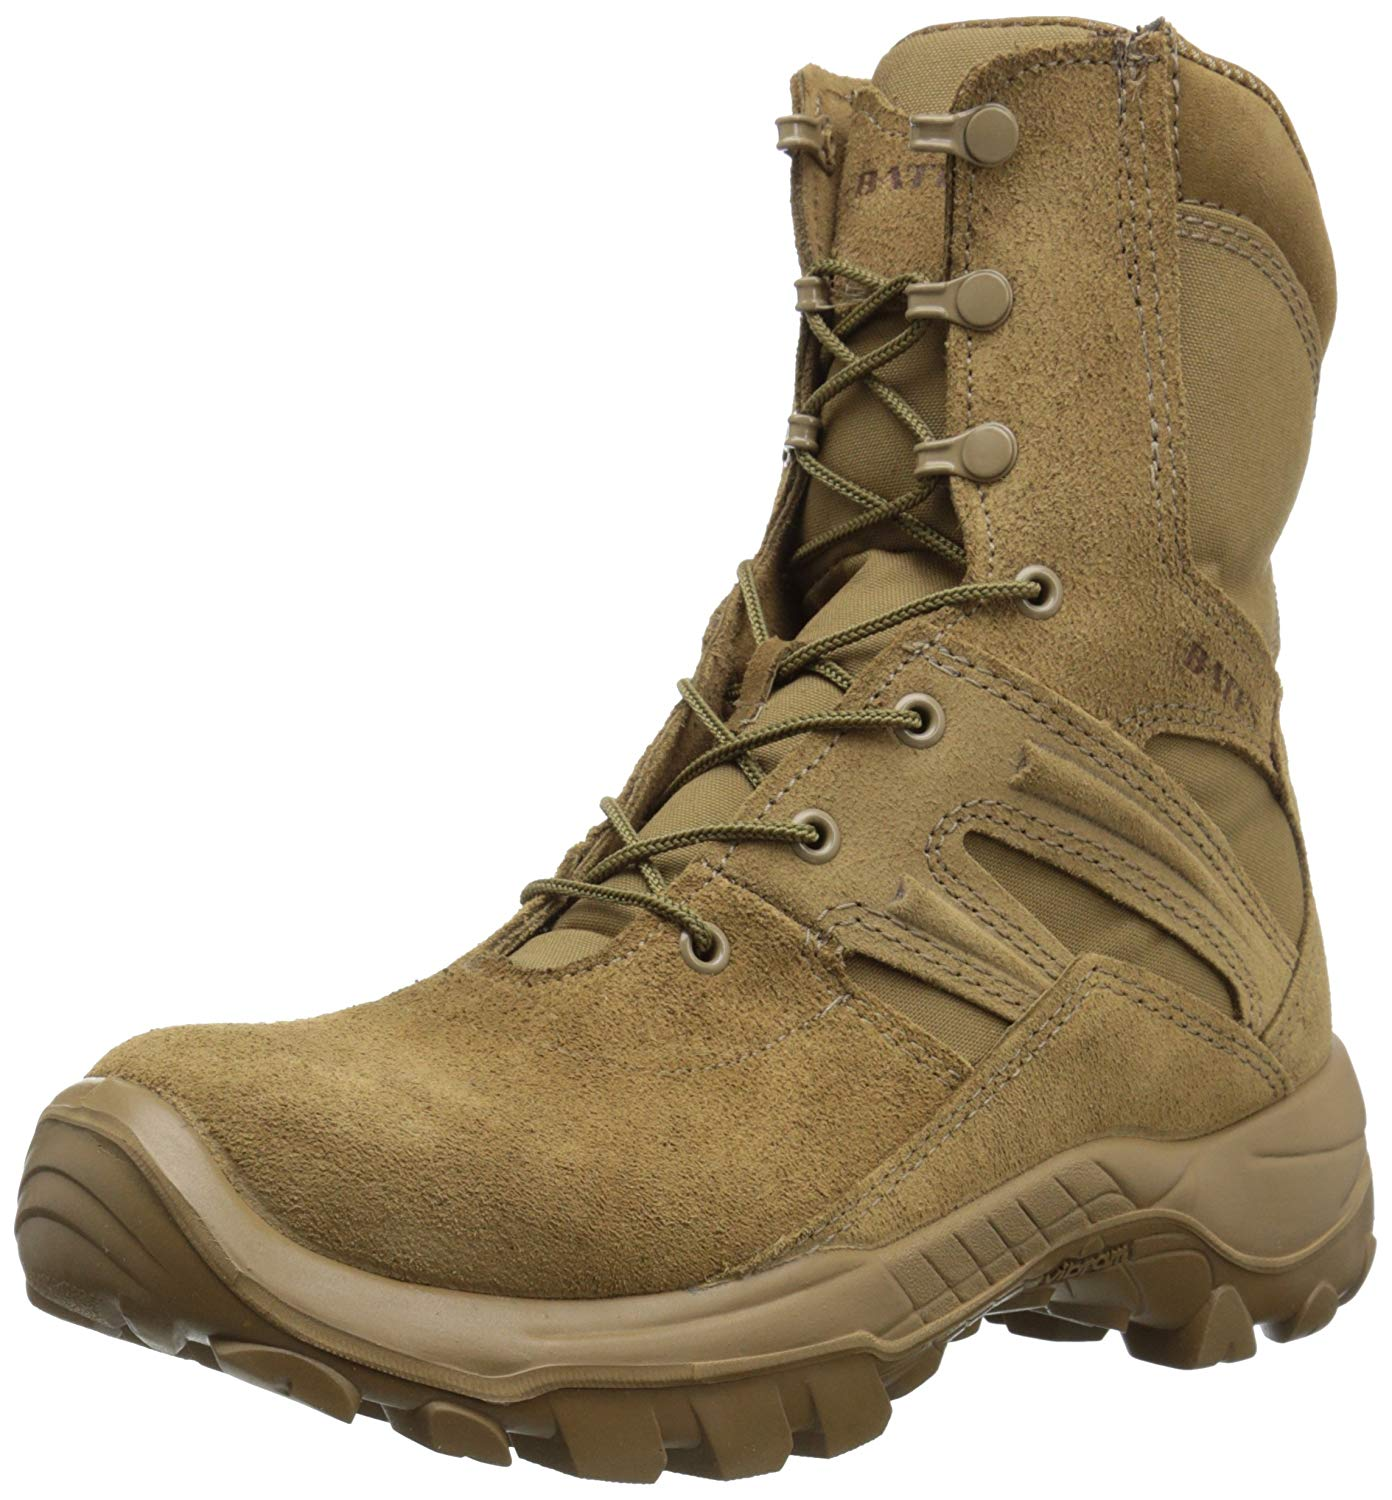 b4c34ab460b Cheap Bates Military Boot, find Bates Military Boot deals on line at ...